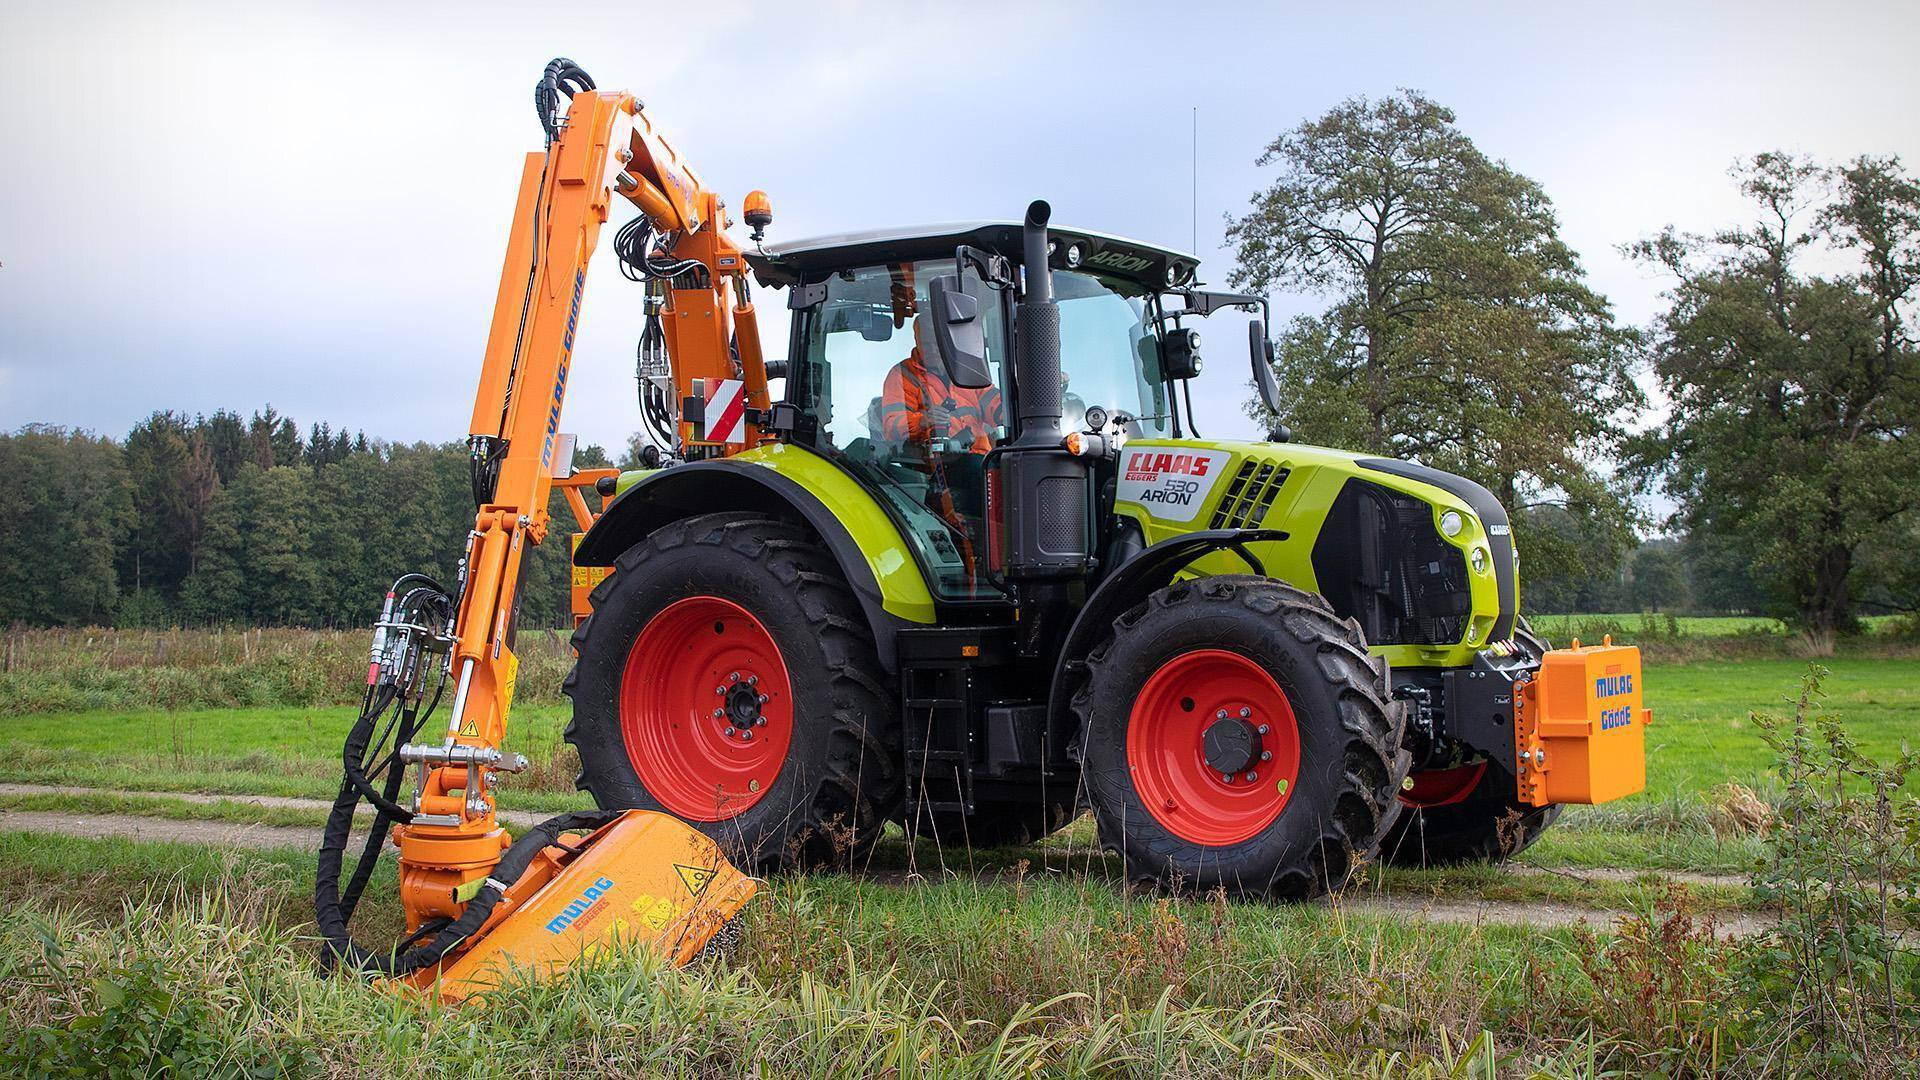 Gallery image 2 - GHA 700 - innovative rear boom mower for municipal tractors